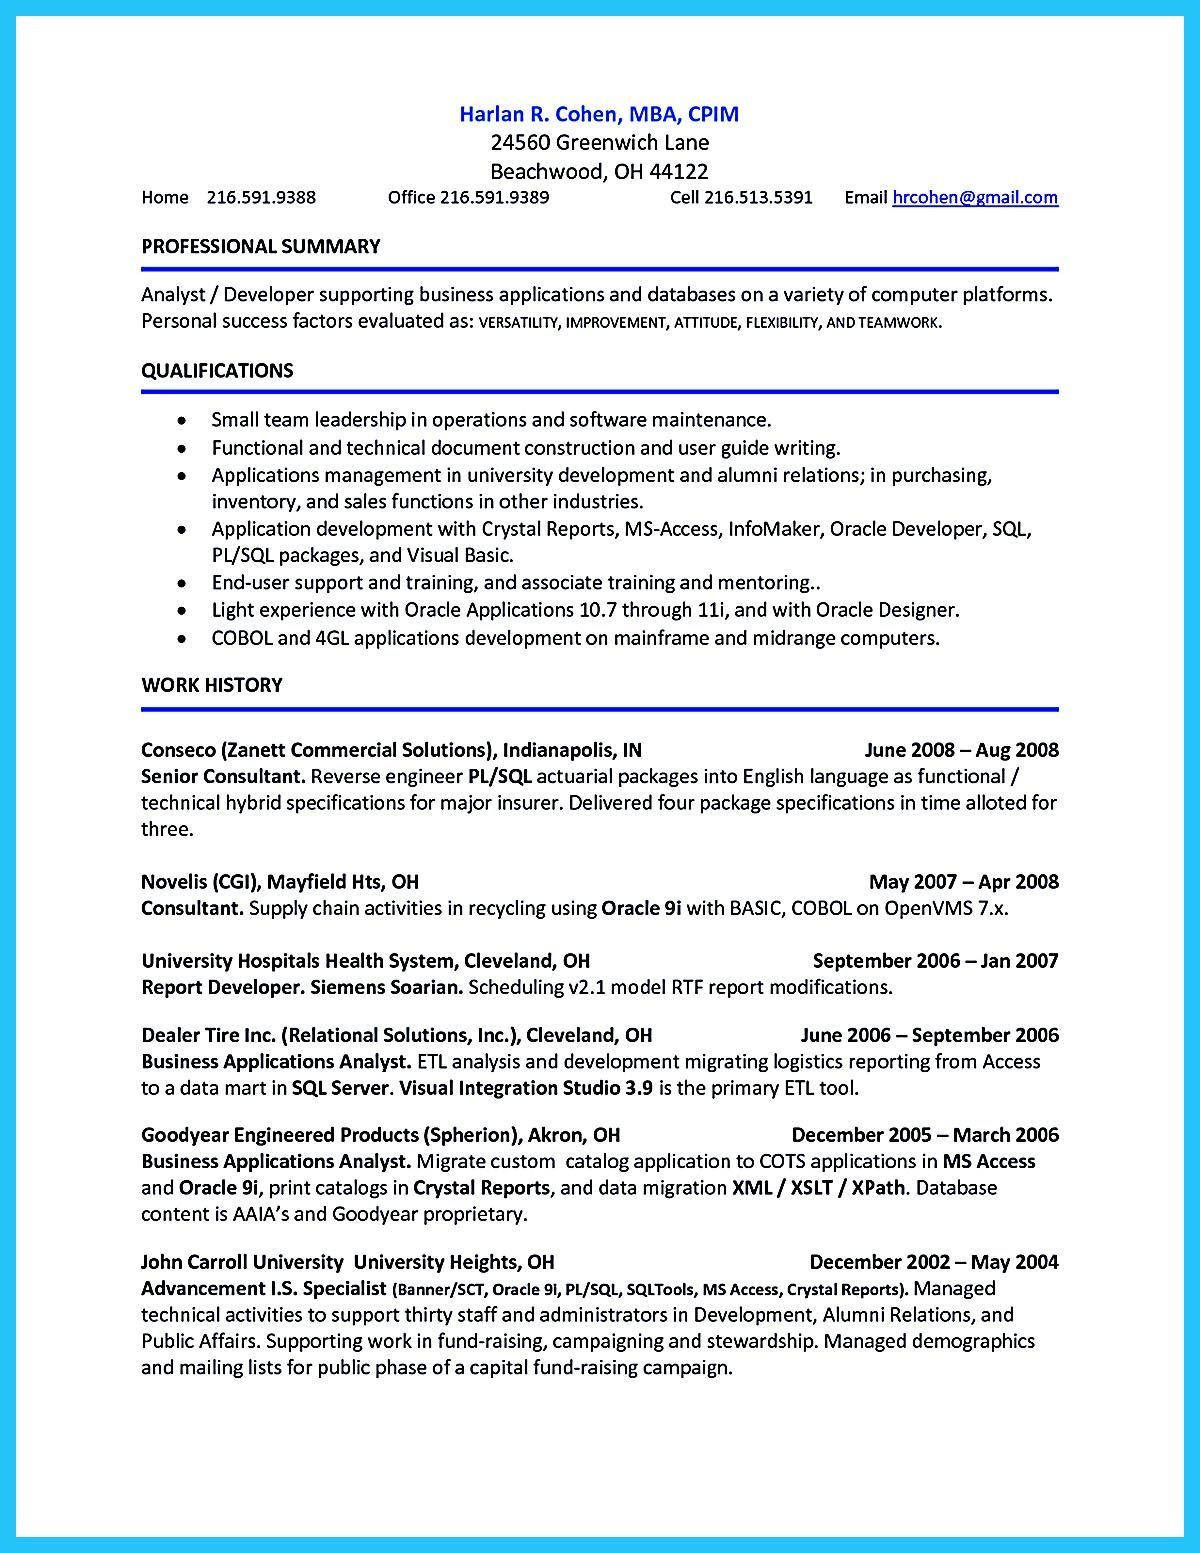 accounts receivable resume presents both skills and also the accounts receivable resume presents both skills and also the strengths of the candidate in good format the accounts receivable resume summary will